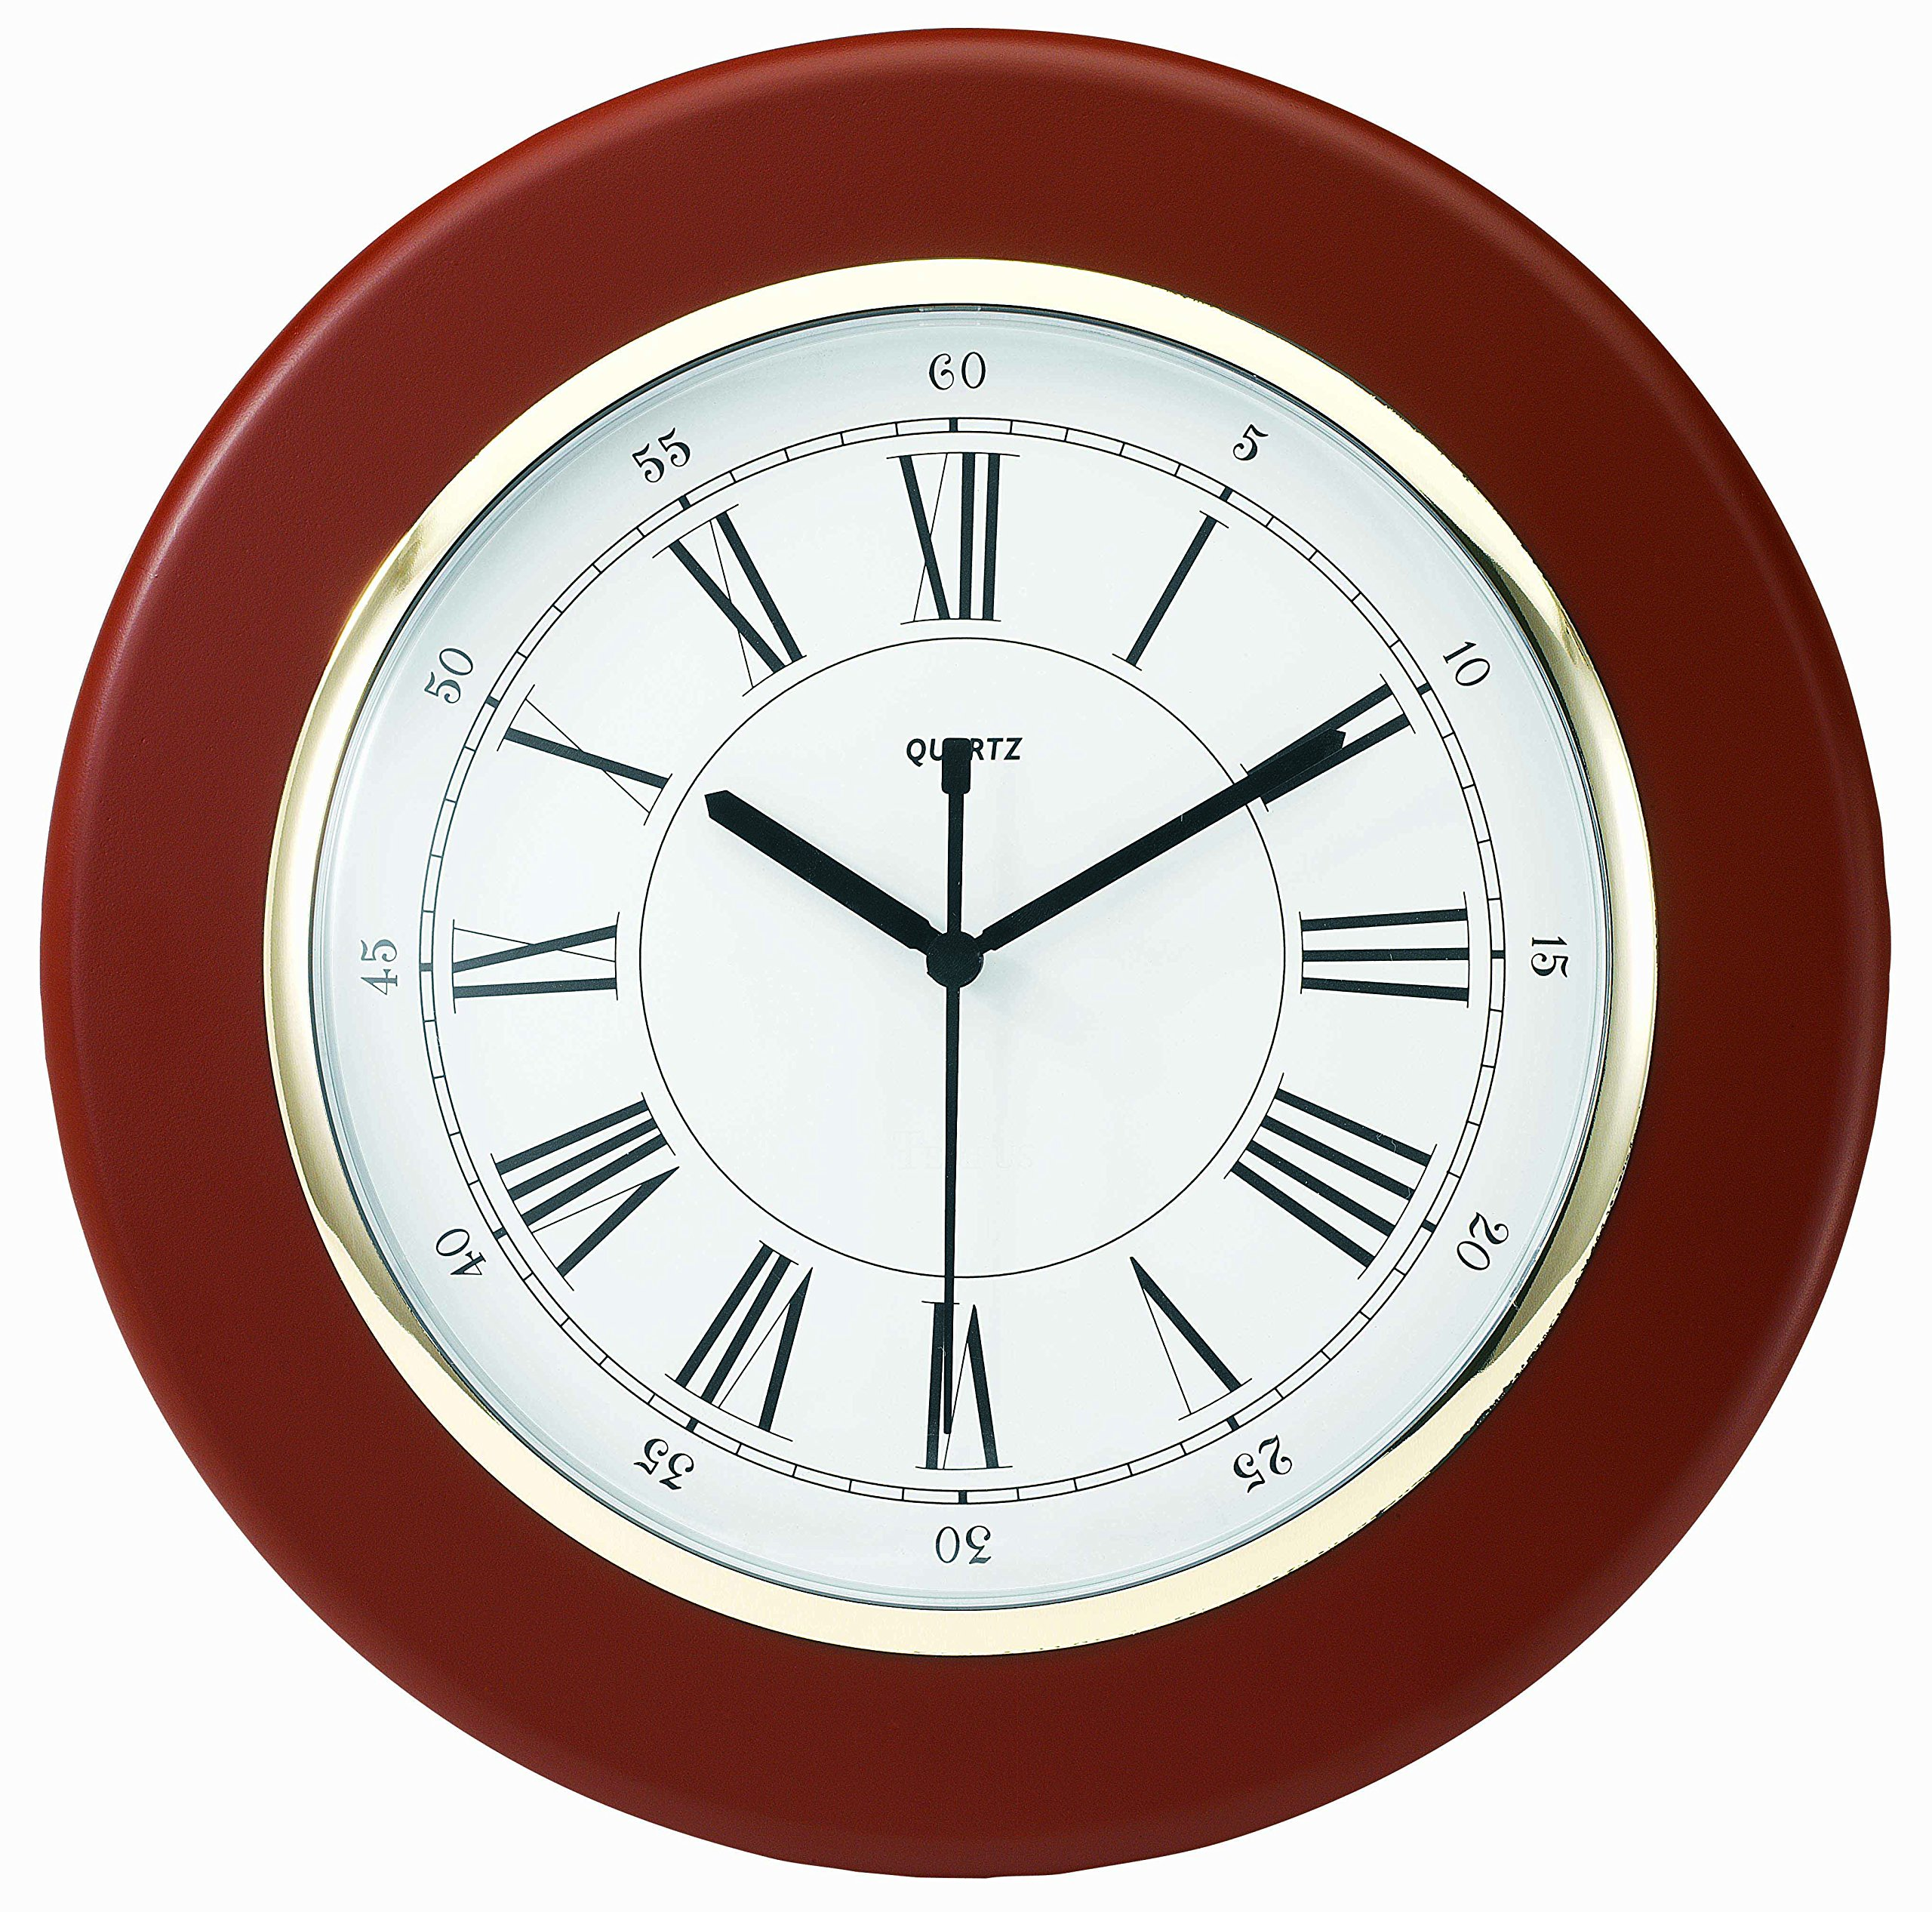 Tempus® TC6027R Wall Clock with Finish Wood Frame and Daylight Saving Time Auto-Adjust Movement, 13'', Mahogany